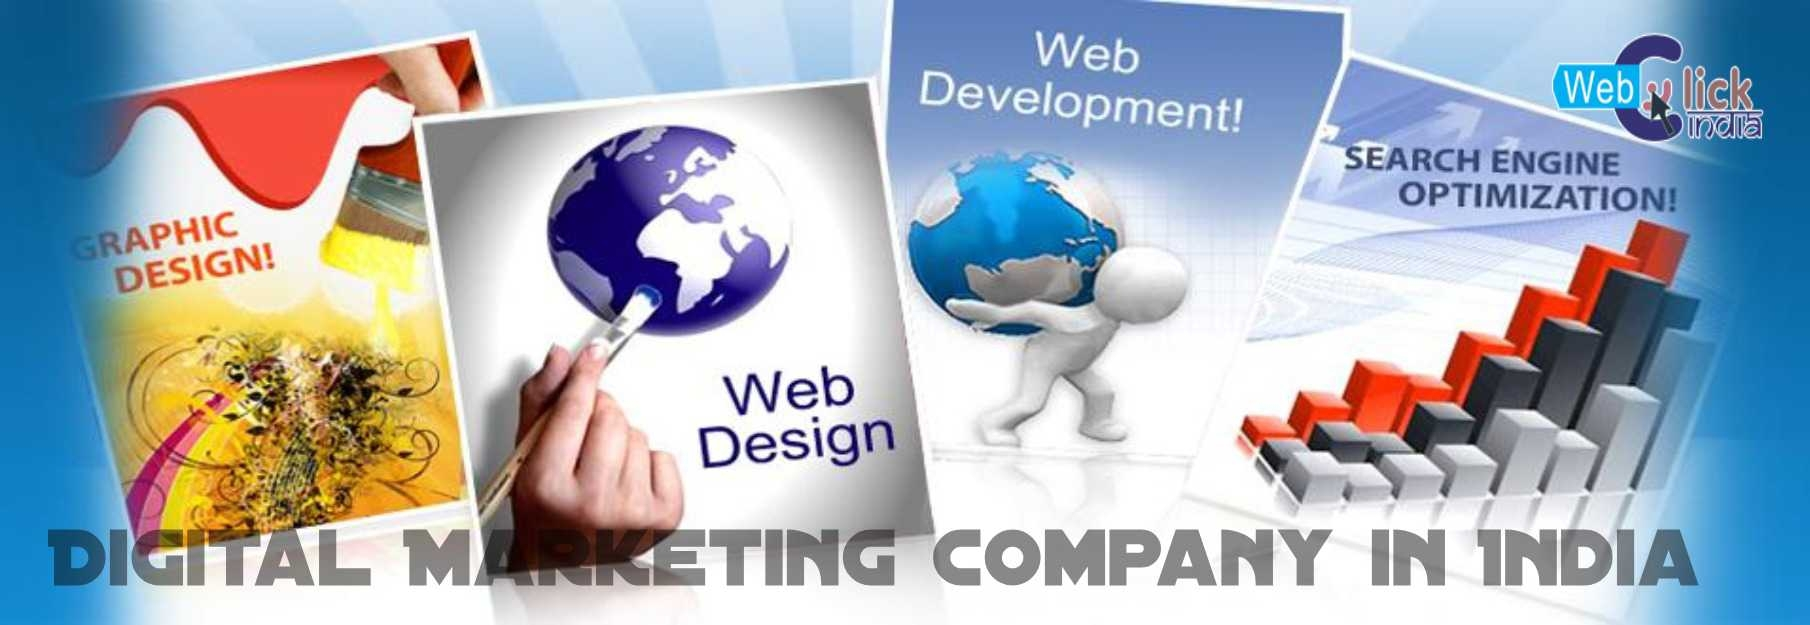 Web Click India (@webclickindia) Cover Image